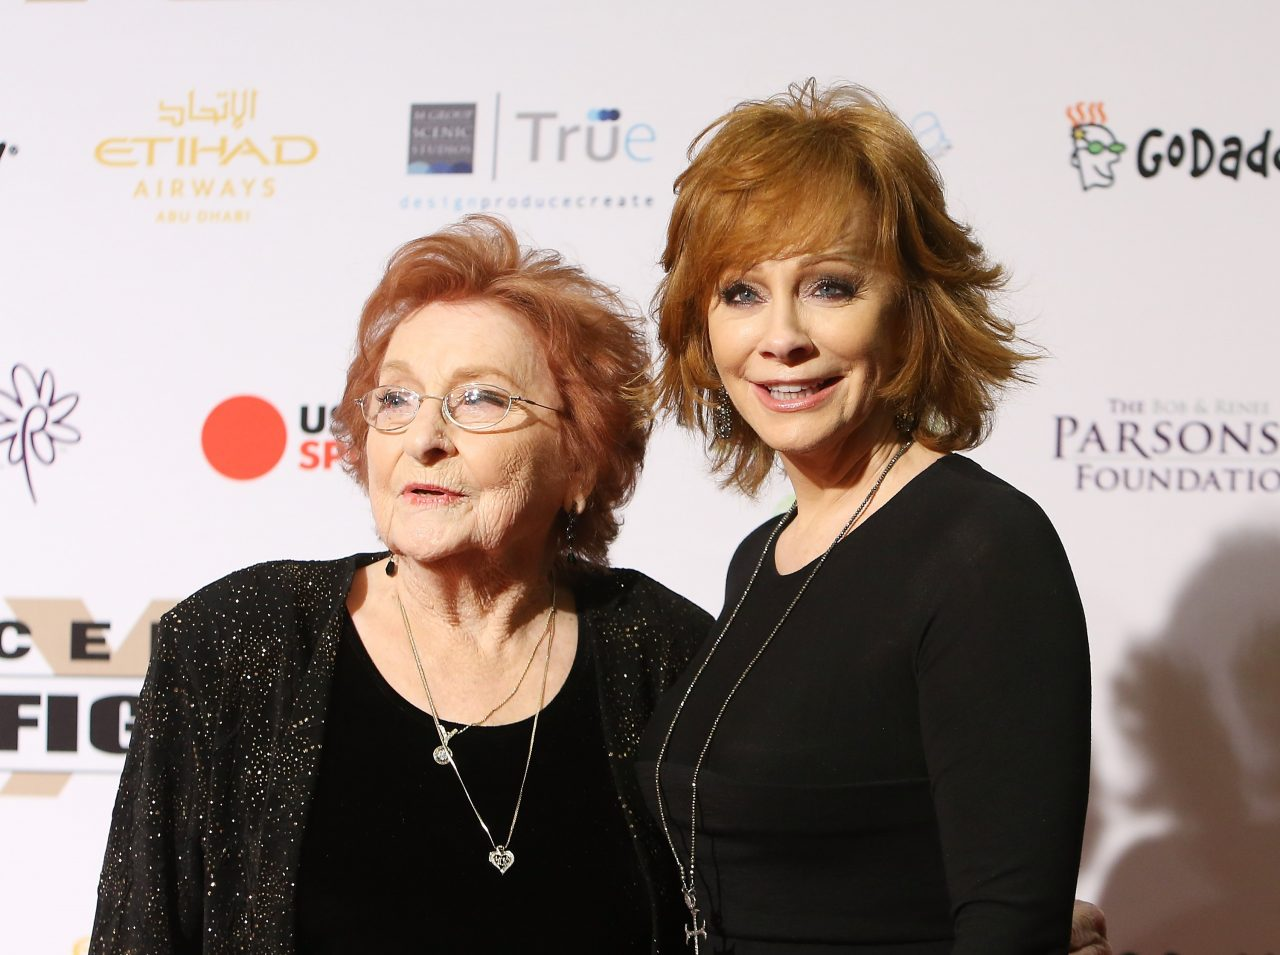 Reba McEntire's Mother, Jacqueline, Dies at Age 93